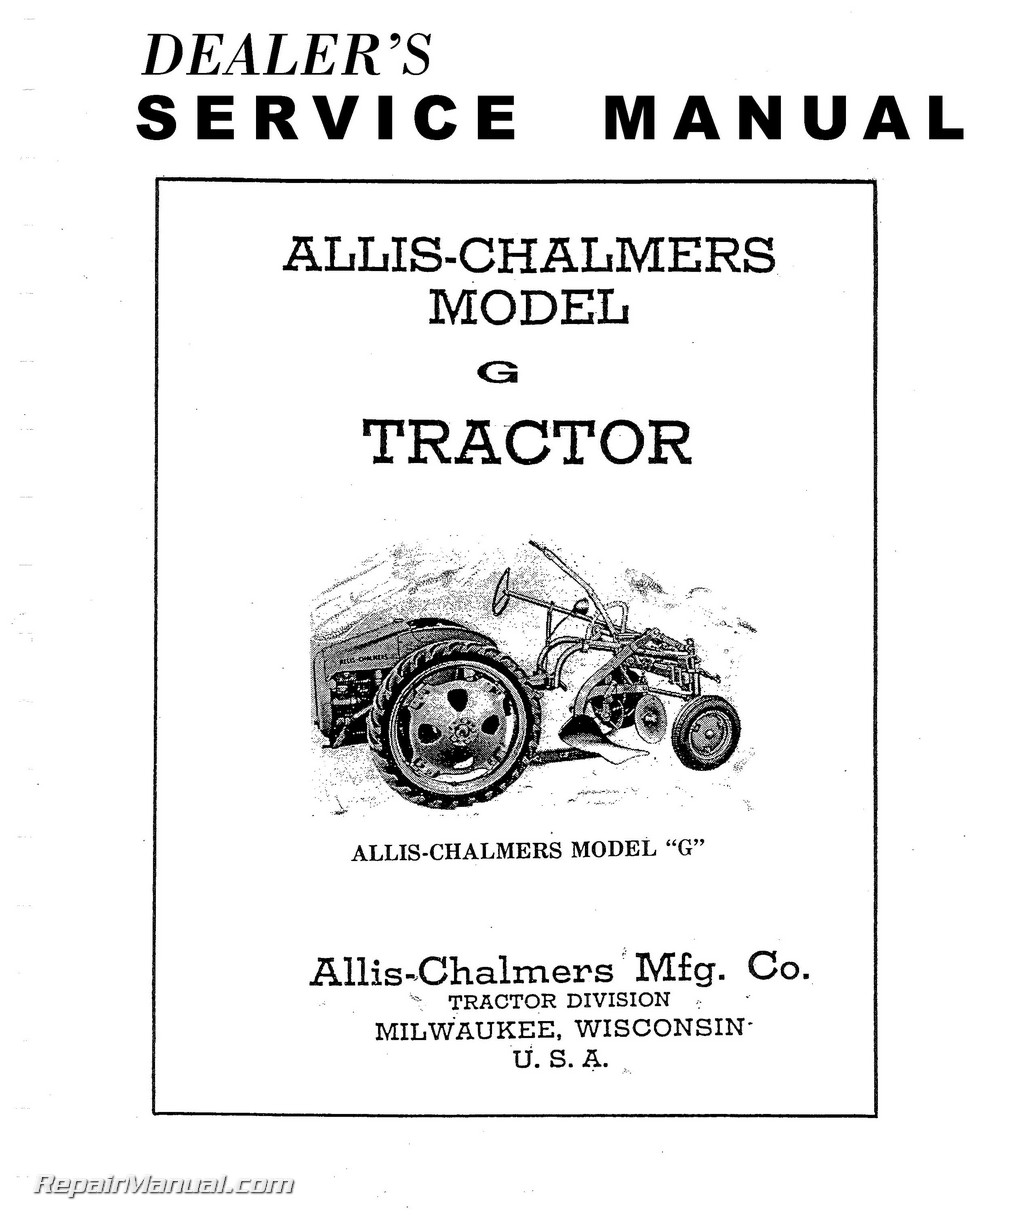 Allis Chalmers Model G Tractor Repair Service Manual